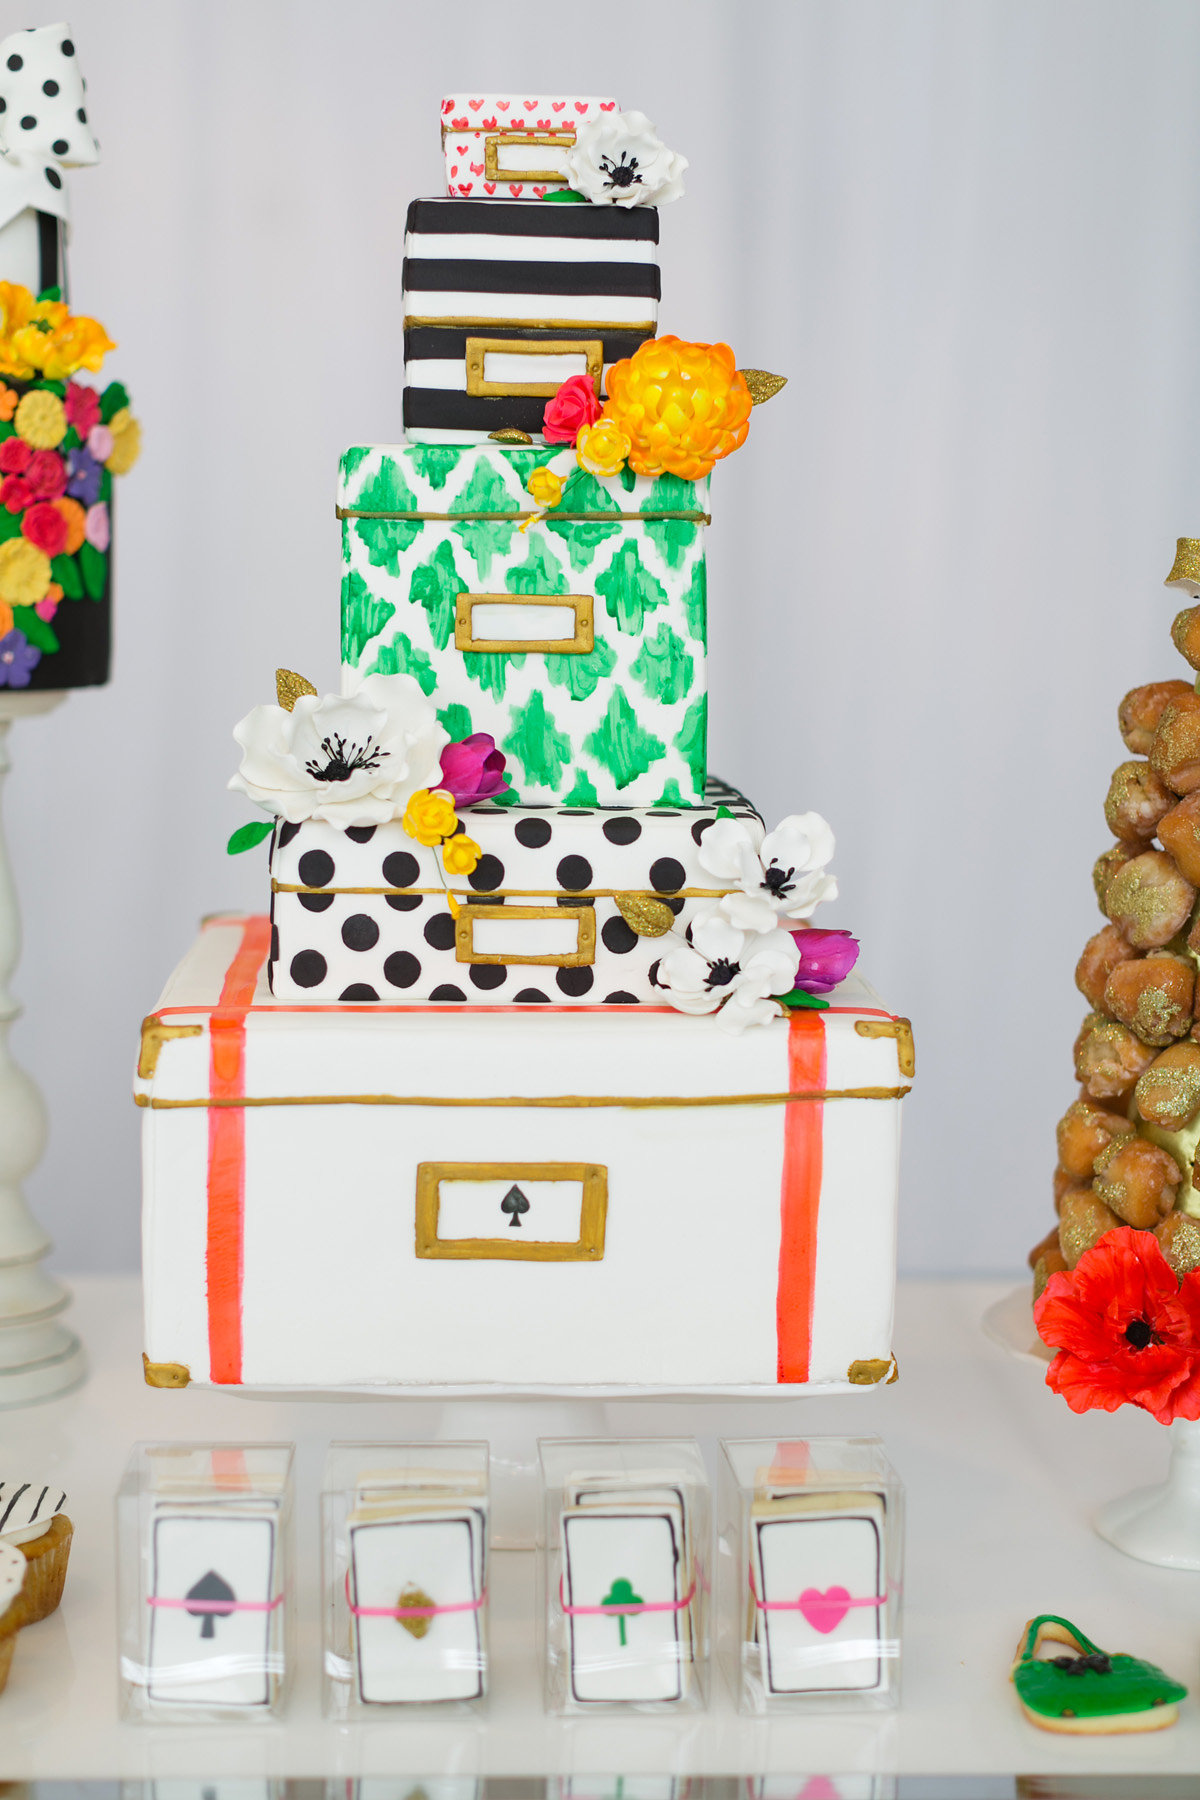 Black and white polka dot and striped Kate Spade themed luggage cake